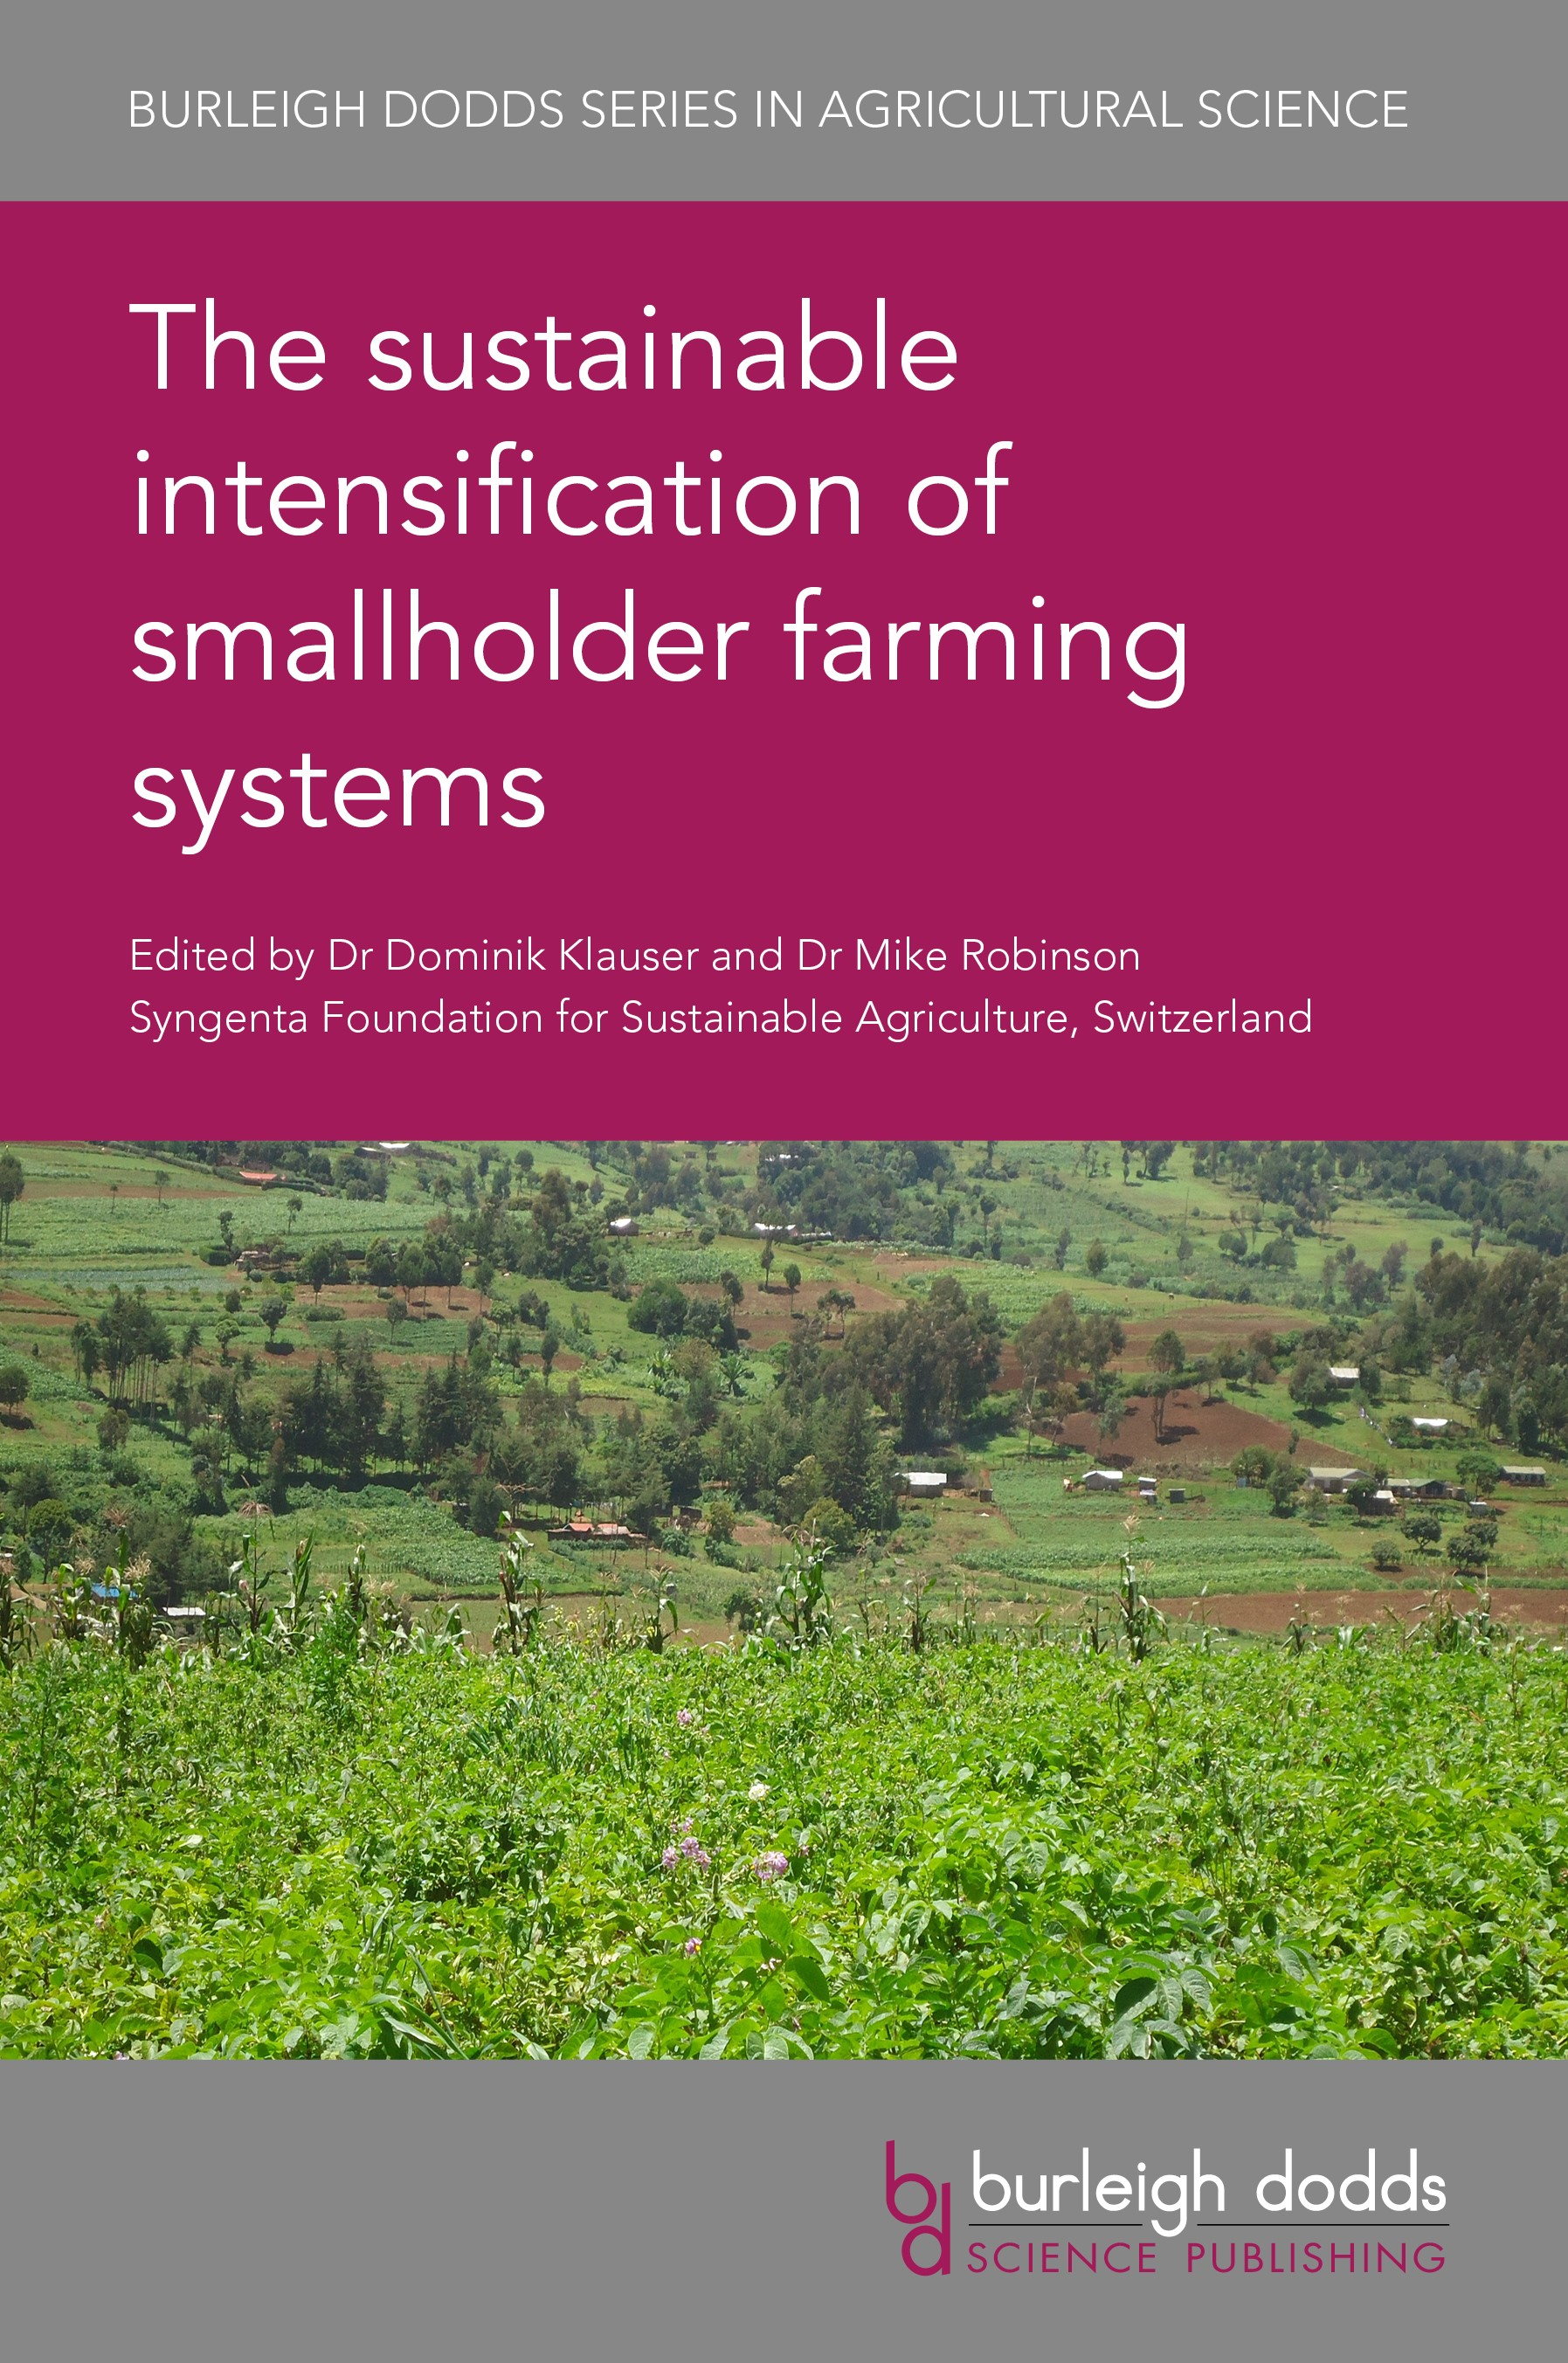 The sustainable intensification of smallholder farming systems